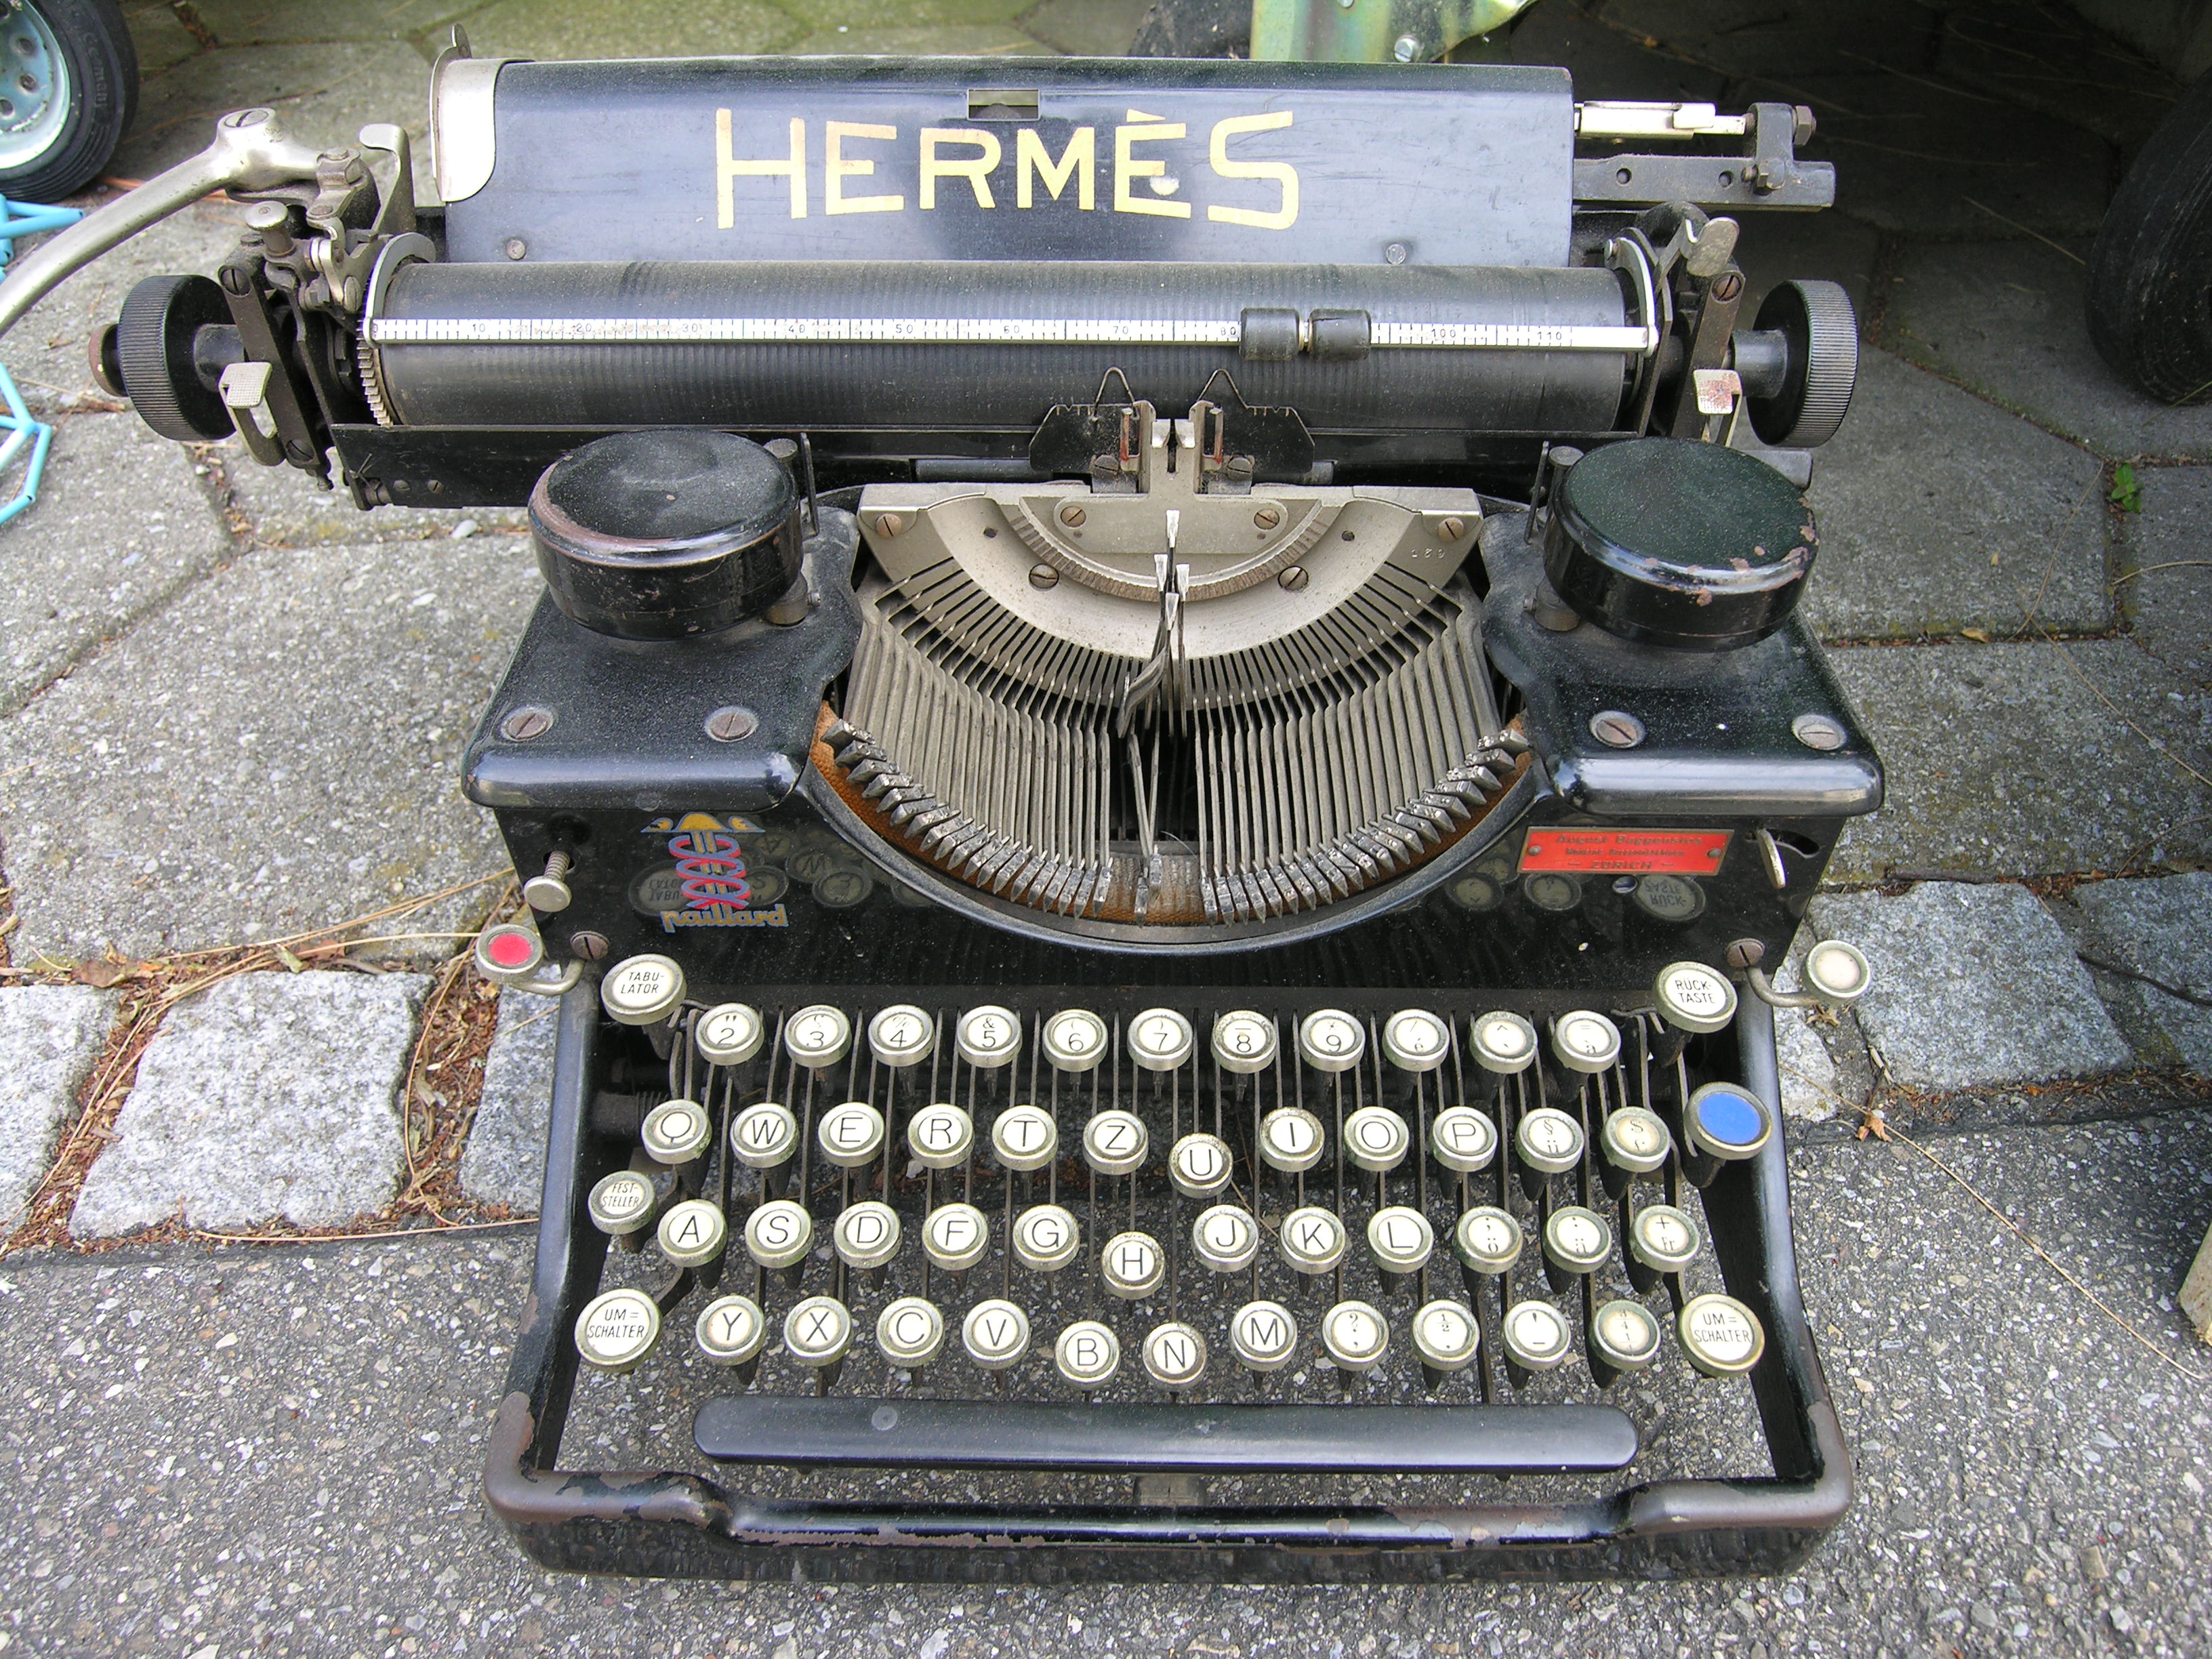 http://upload.wikimedia.org/wikipedia/commons/7/75/TypewriterHermes.jpg